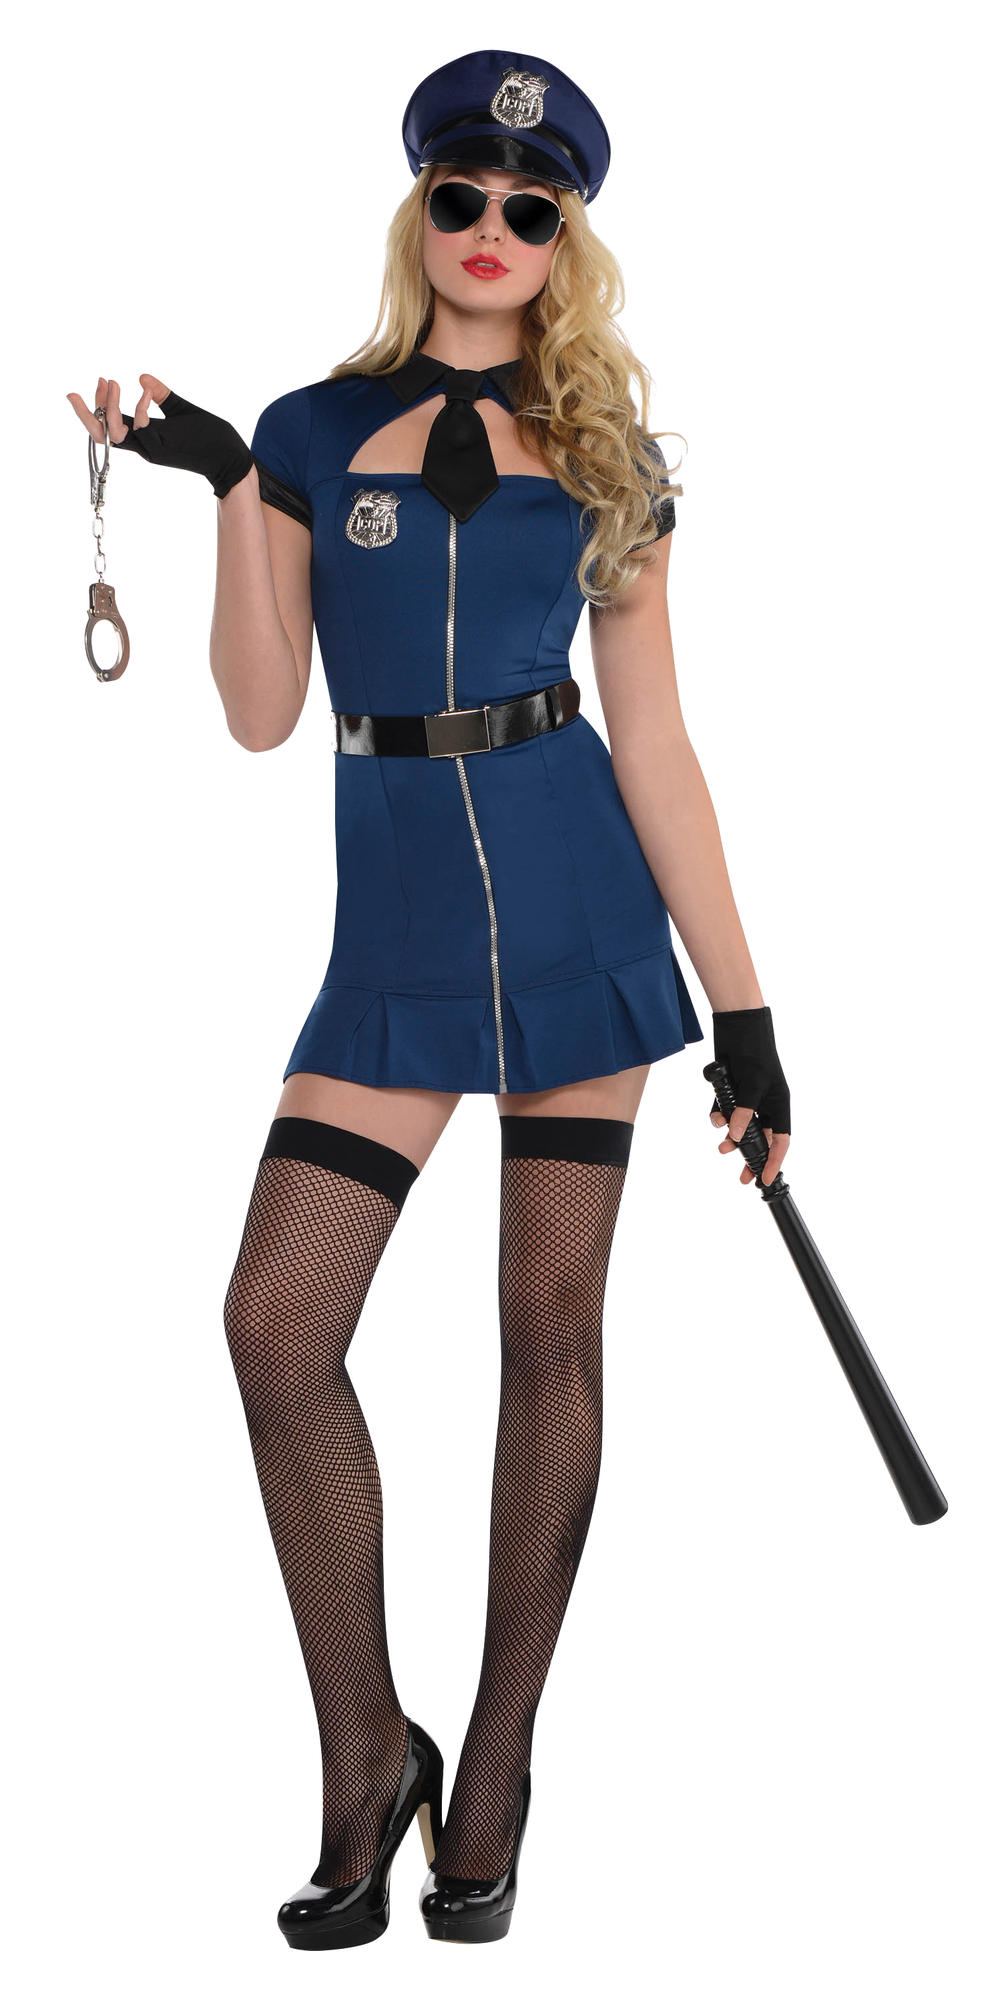 Bad Cop Ladies Fancy Dress Sexy Police Woman Uniform Adults Costume Outfit + Hat